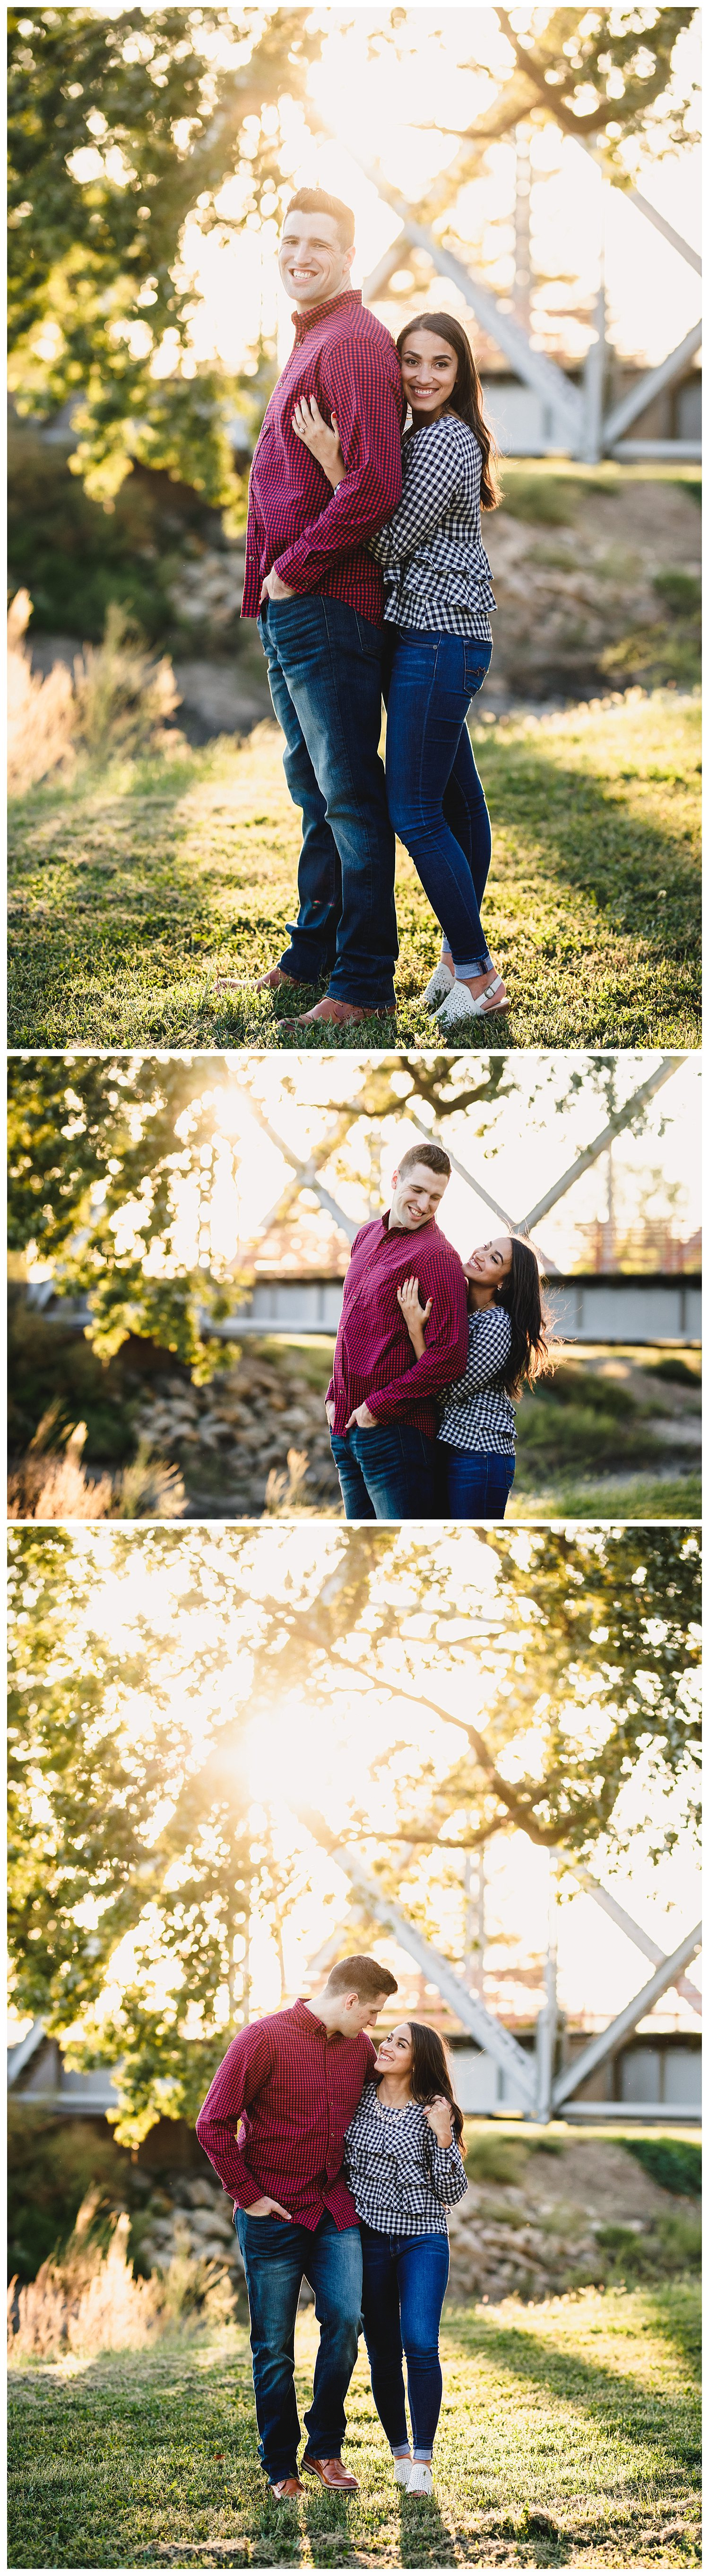 Kansas_City_Wedding_Photographer_Engagement_Kelsey_Diane_Photography_Midwest_Traveling_In_home_engagement_Session_Cassie_Austin_Parkville_Missouri_0895.jpg